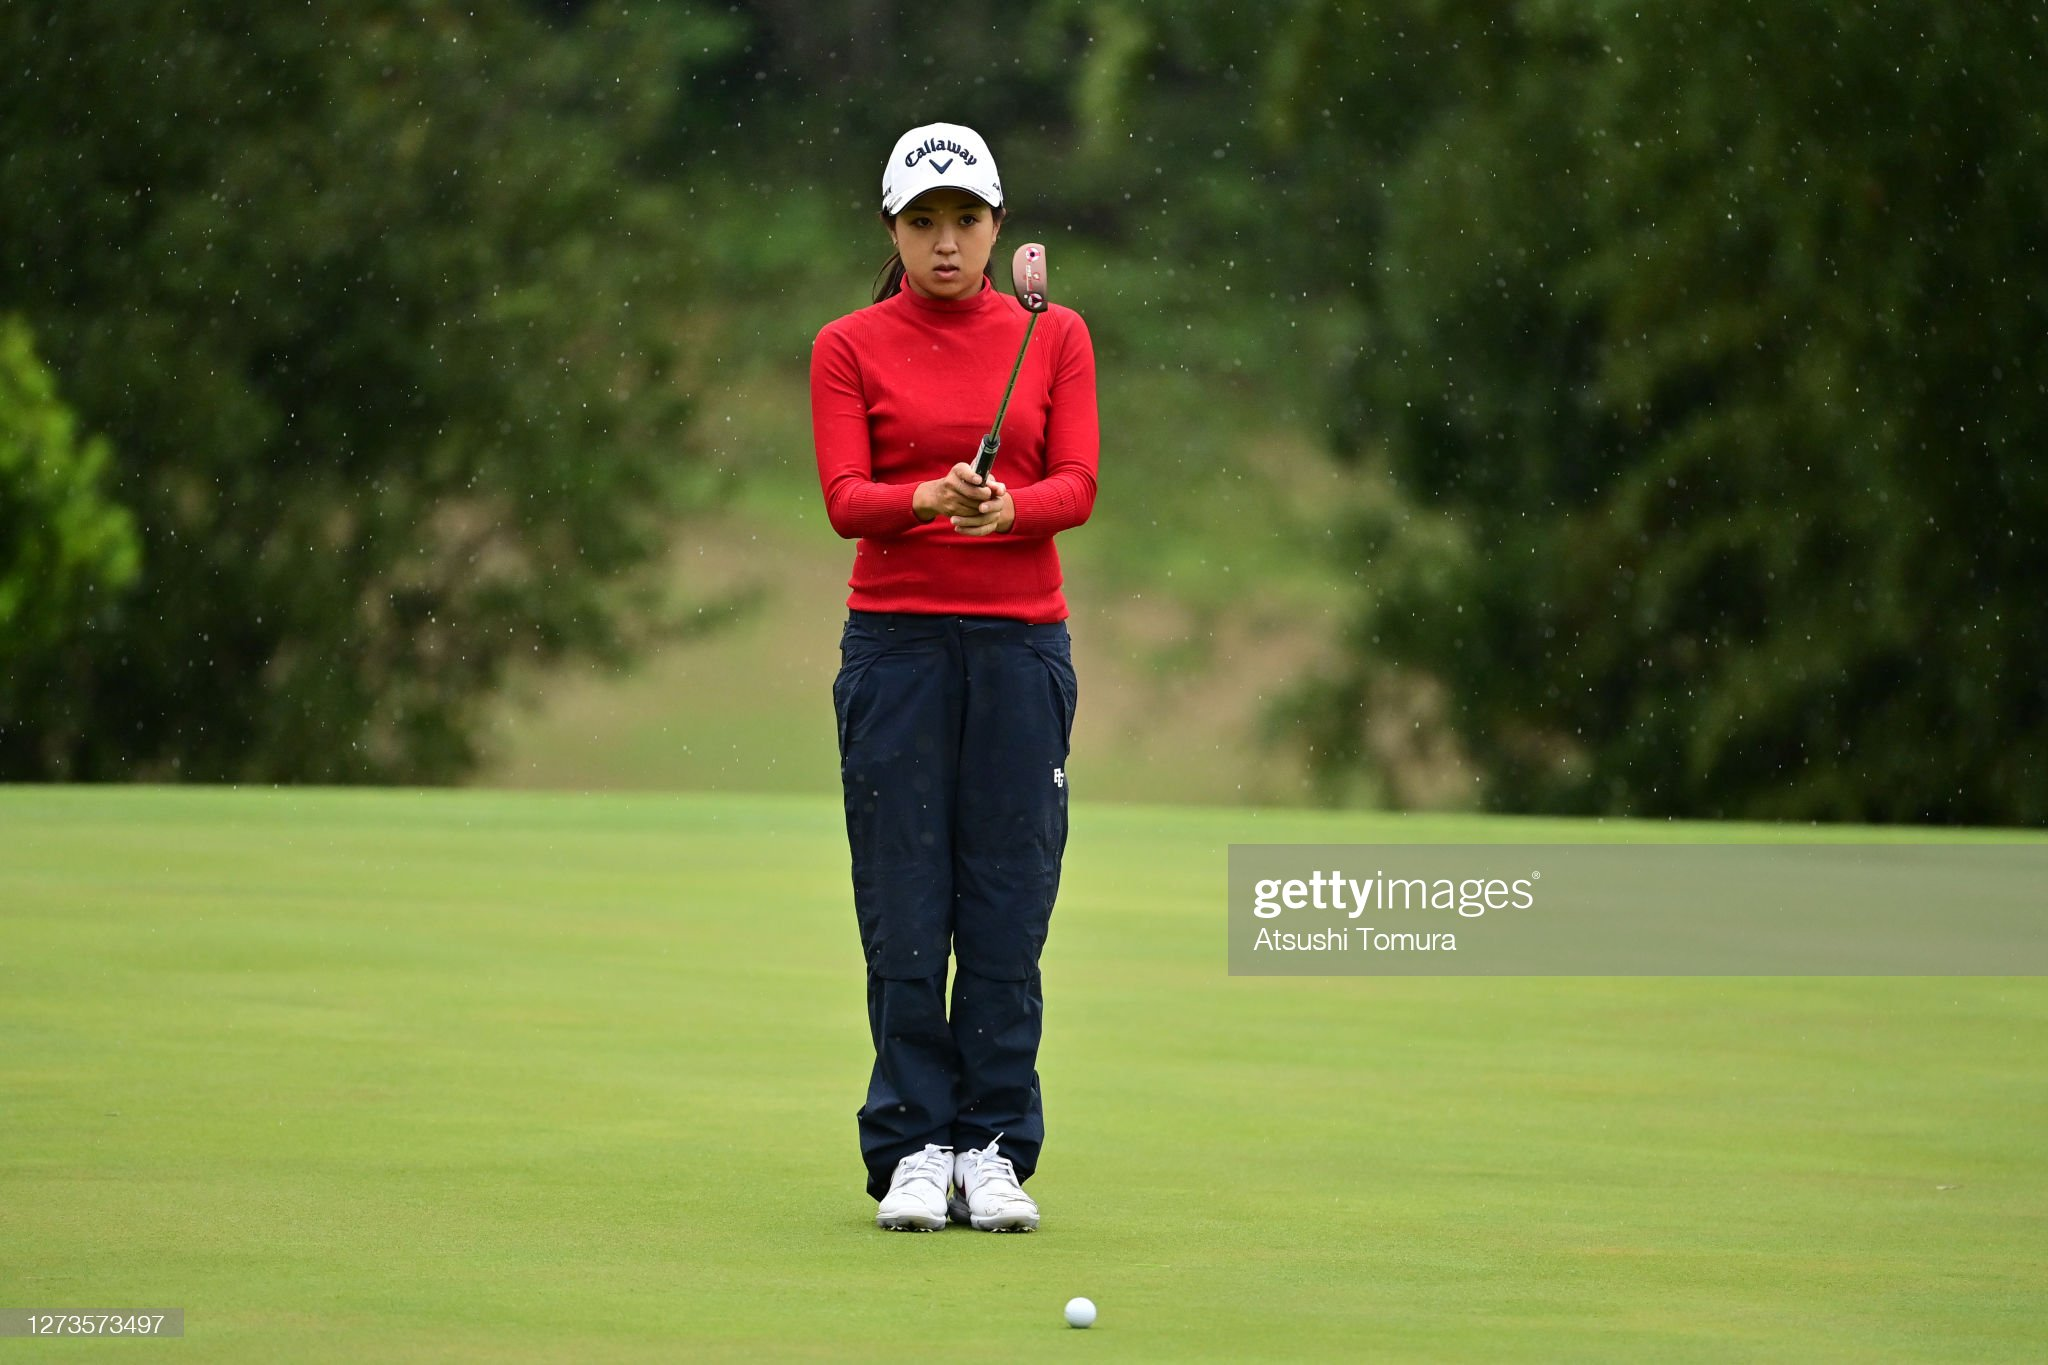 https://media.gettyimages.com/photos/solar-lee-of-south-korea-lines-up-a-putt-on-the-2nd-green-during-the-picture-id1273573497?s=2048x2048